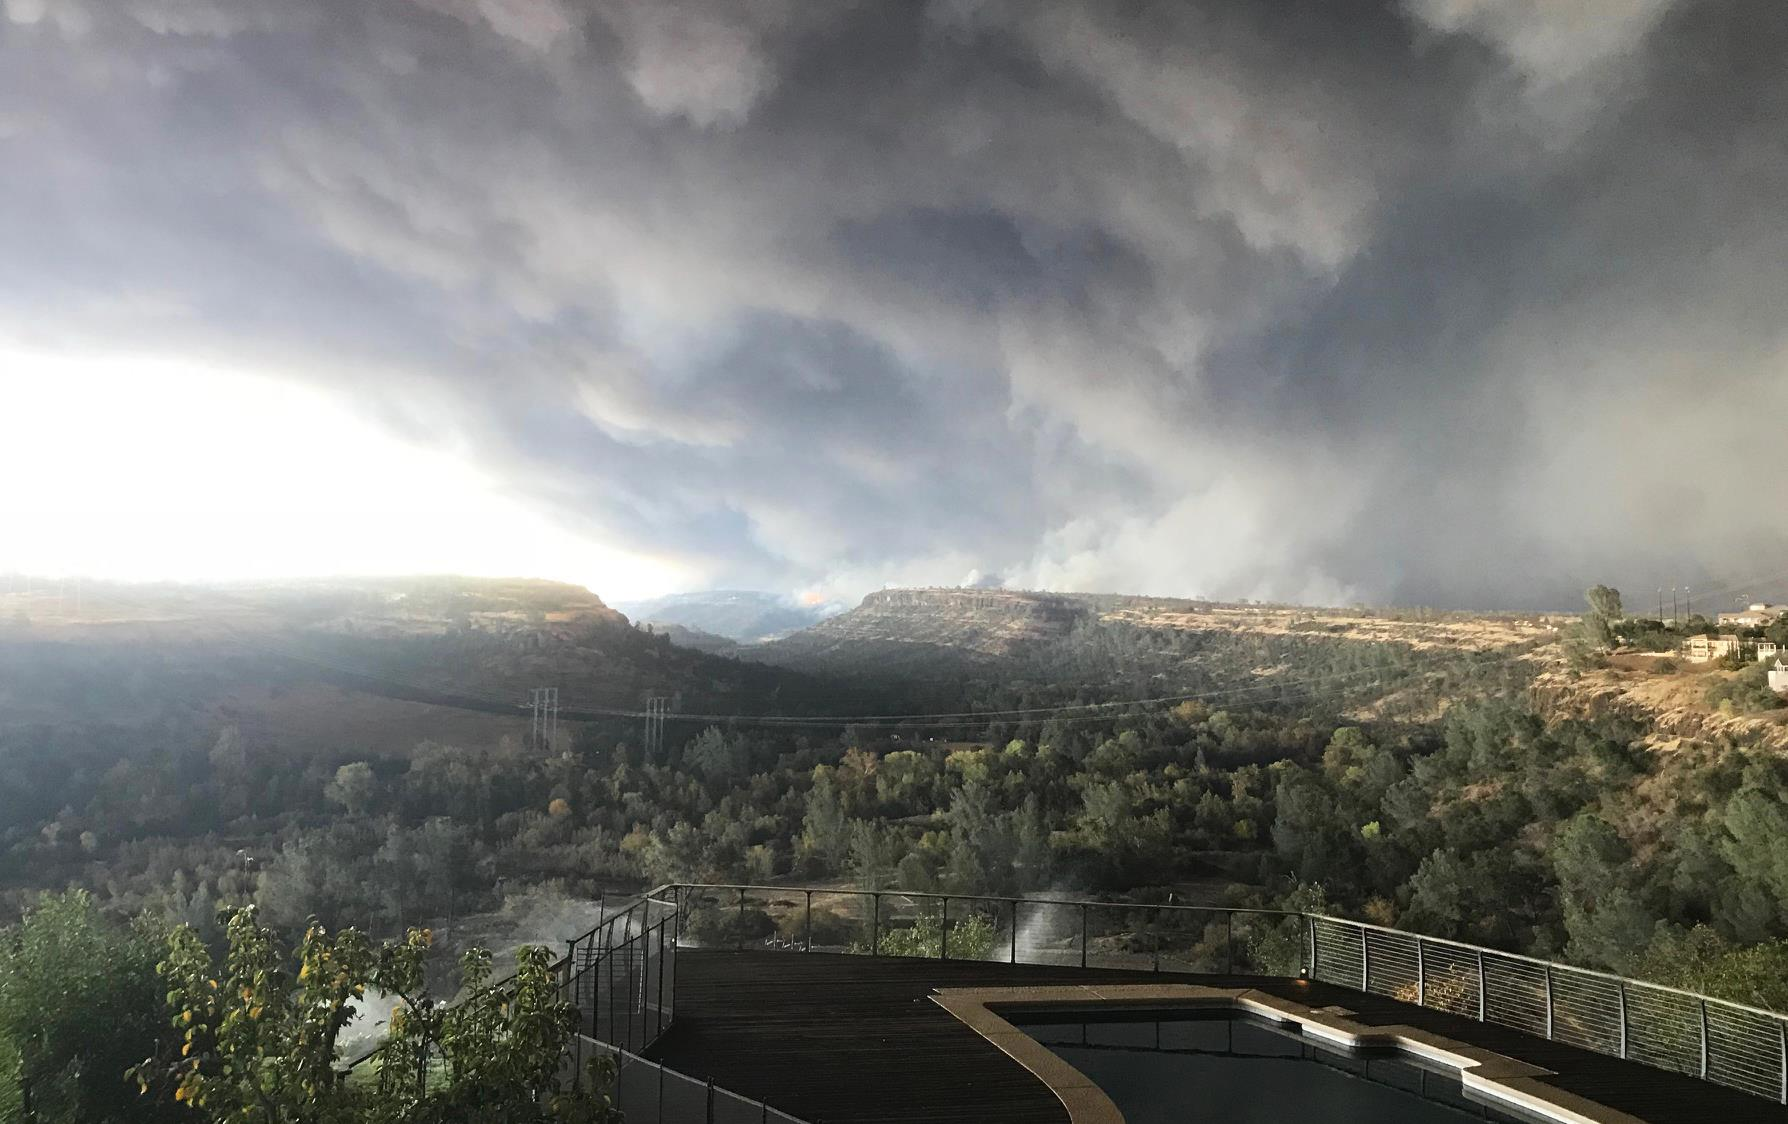 CA Camp Fire, Logan Wilson photo, mass of smoke covers the whole sky above mountains (background) and tree-filled valley (foreground)